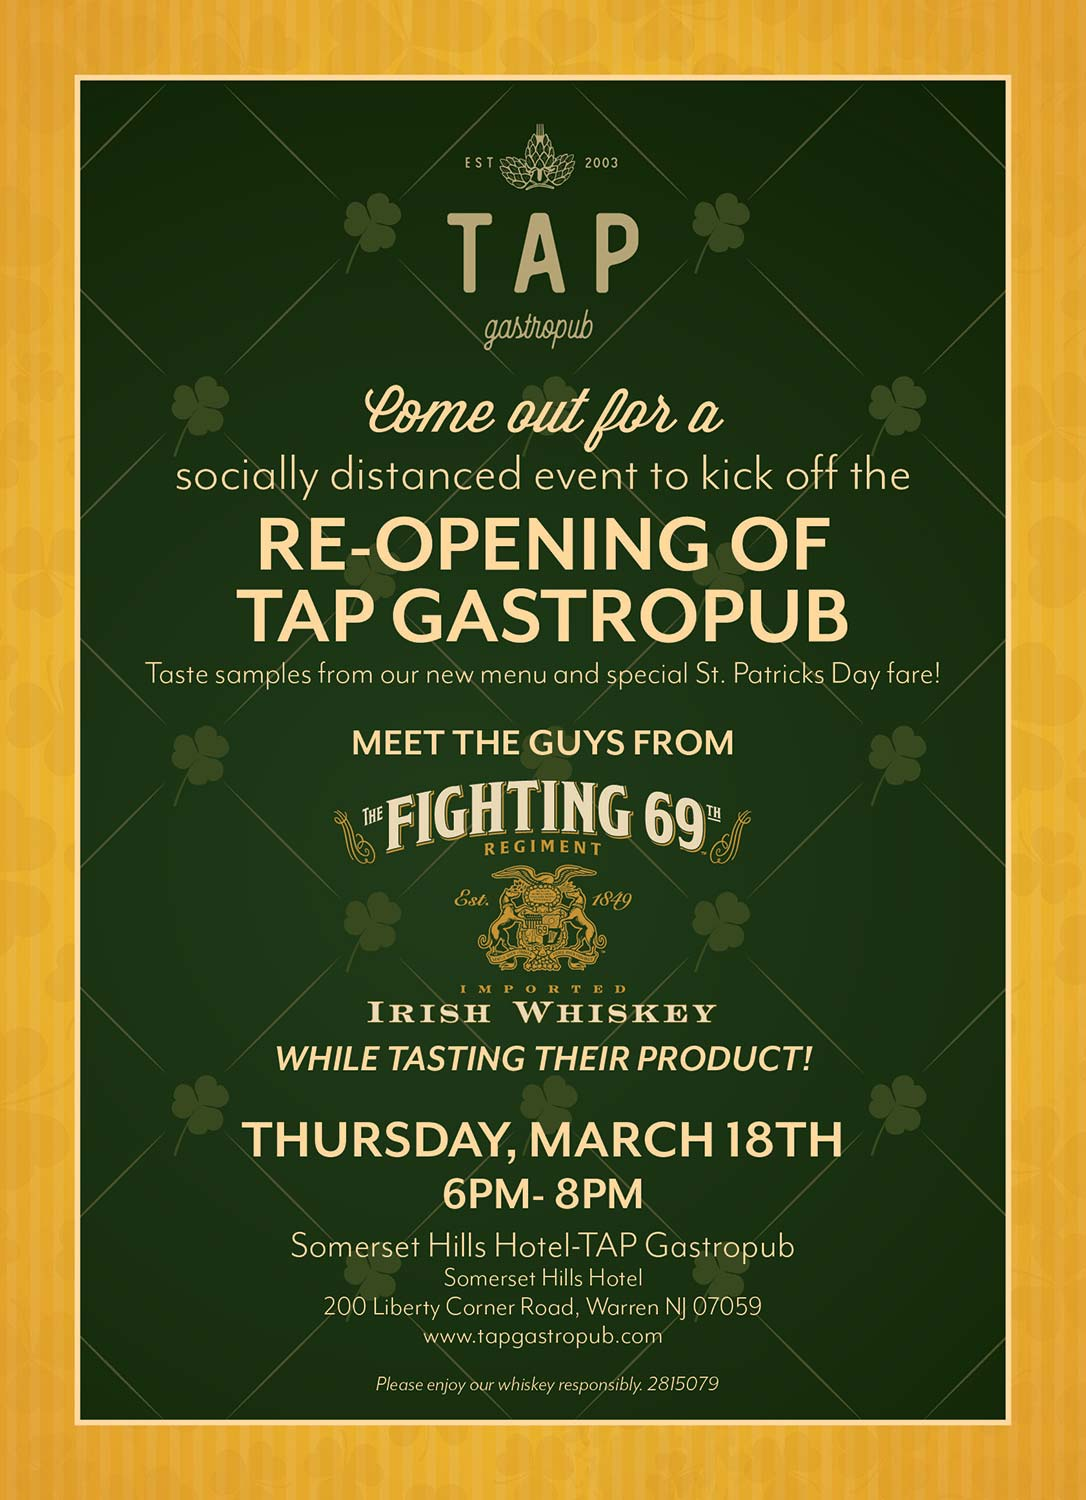 St. Patrick's Day flyer celebrating the re-opening of TAP Gastropub